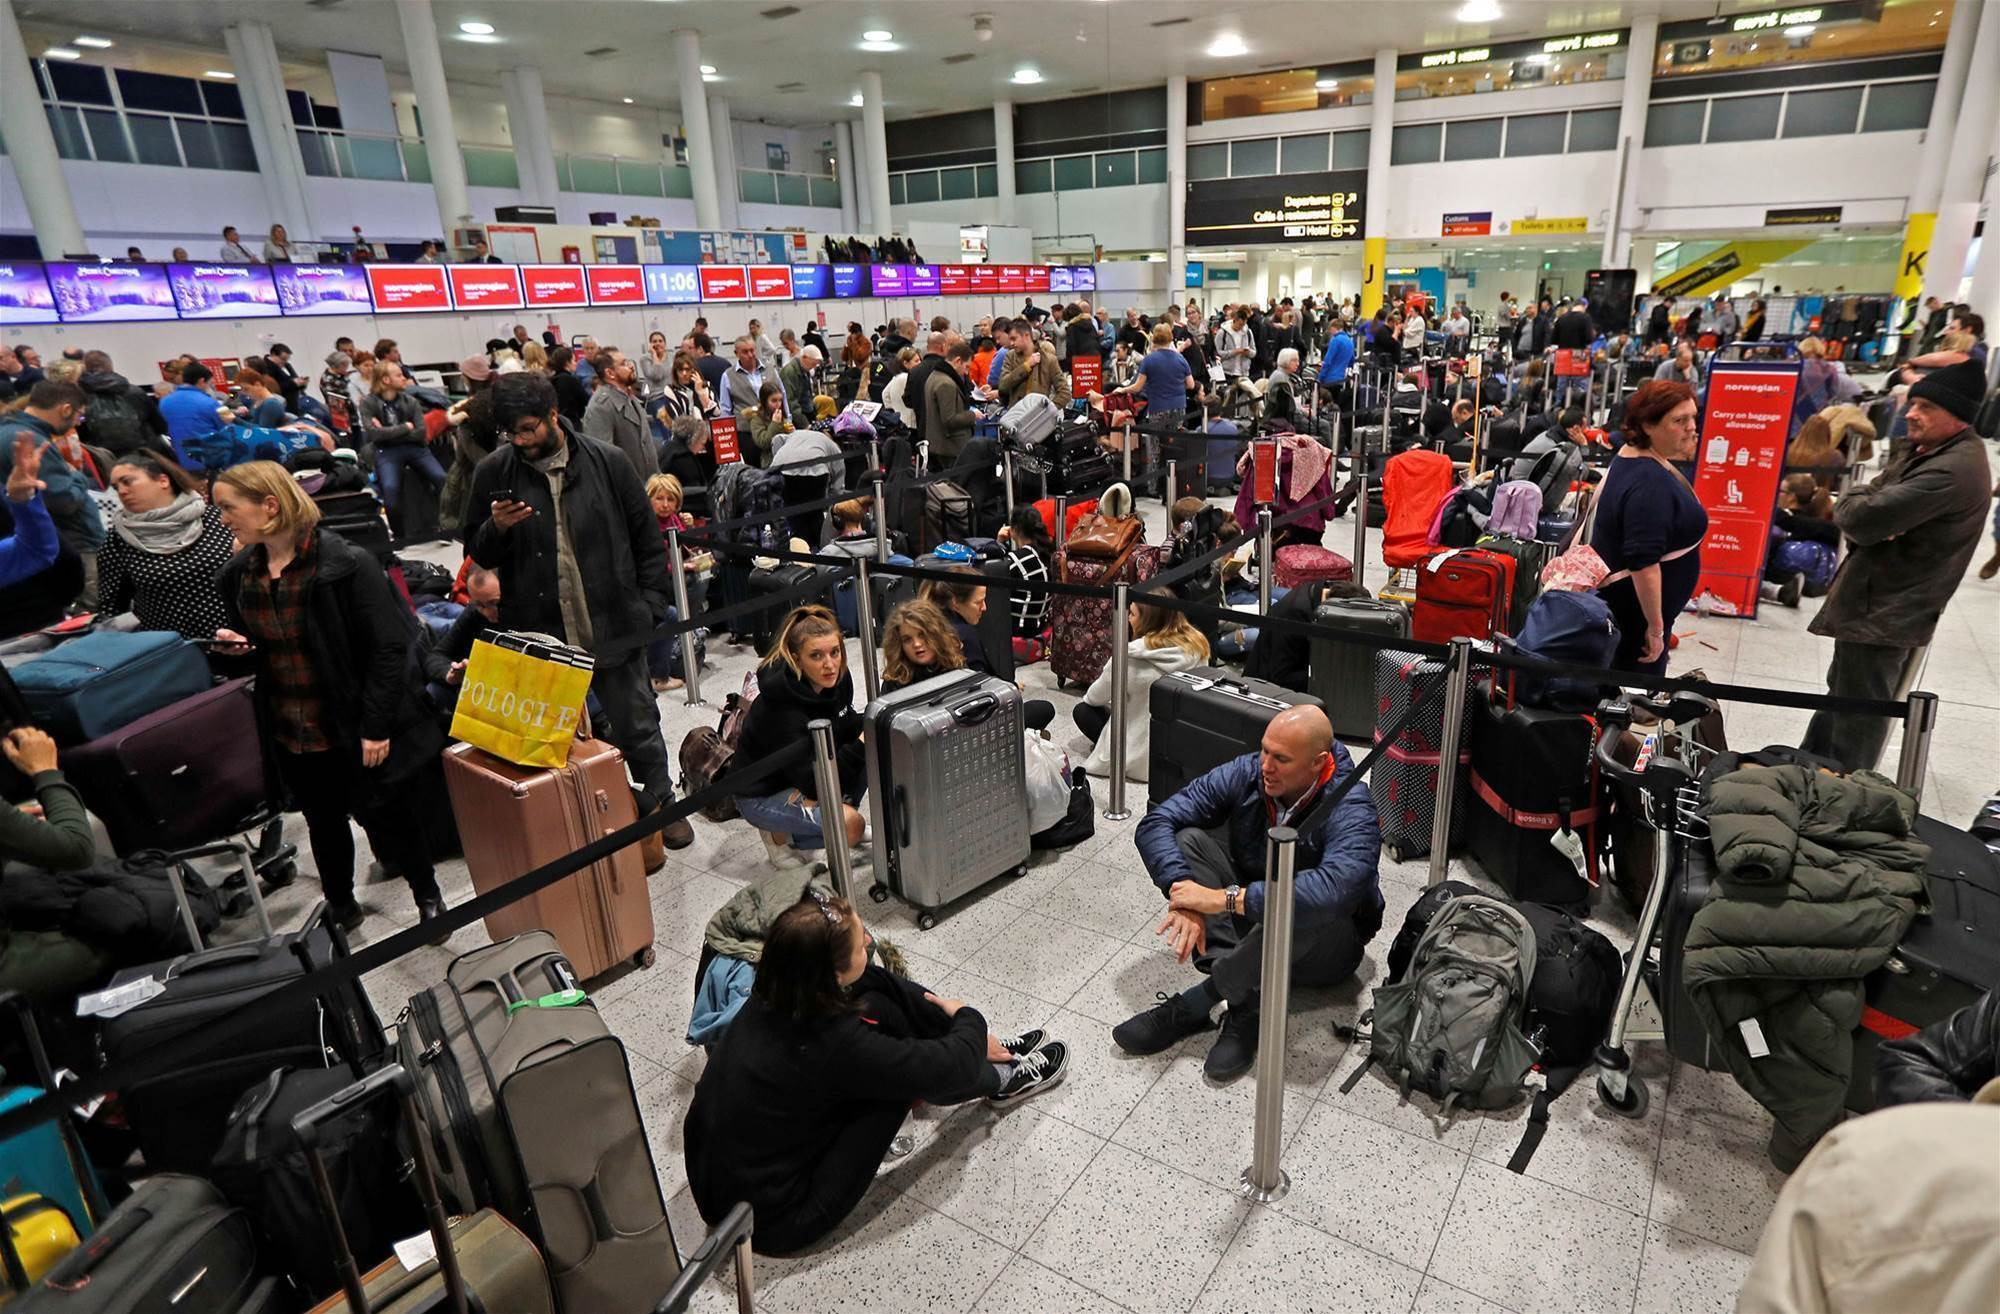 Drones paralyse British airport, grounding Christmas travellers